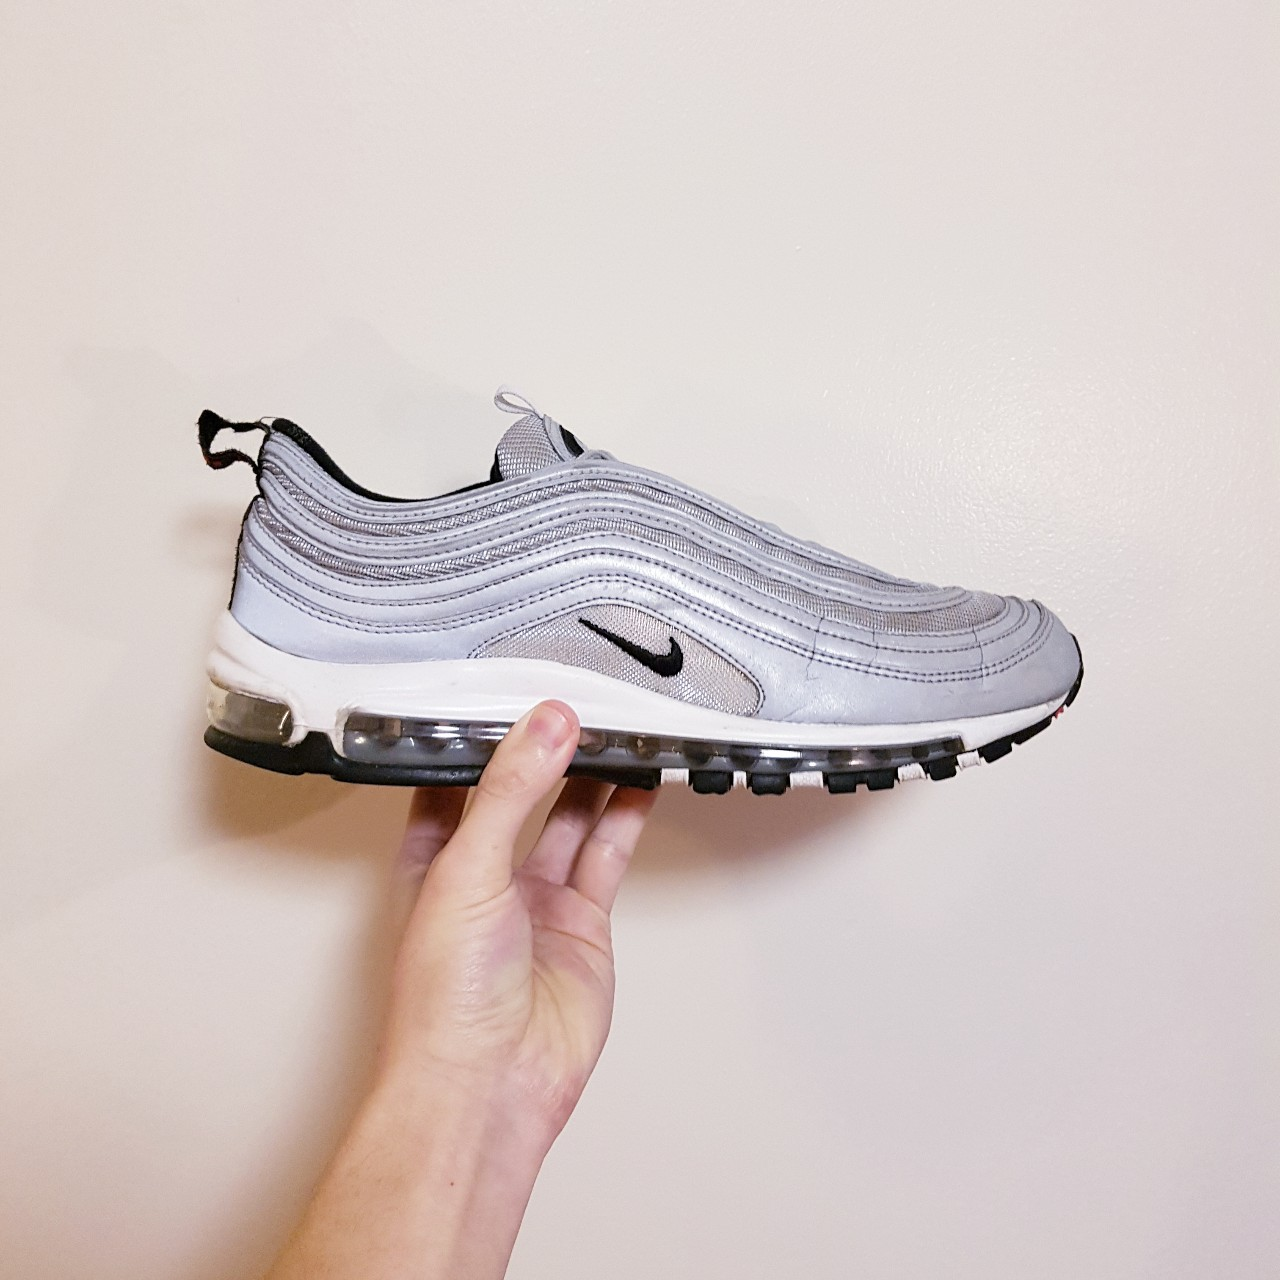 Nike Air max 97 reflective pack Similar to silver Depop